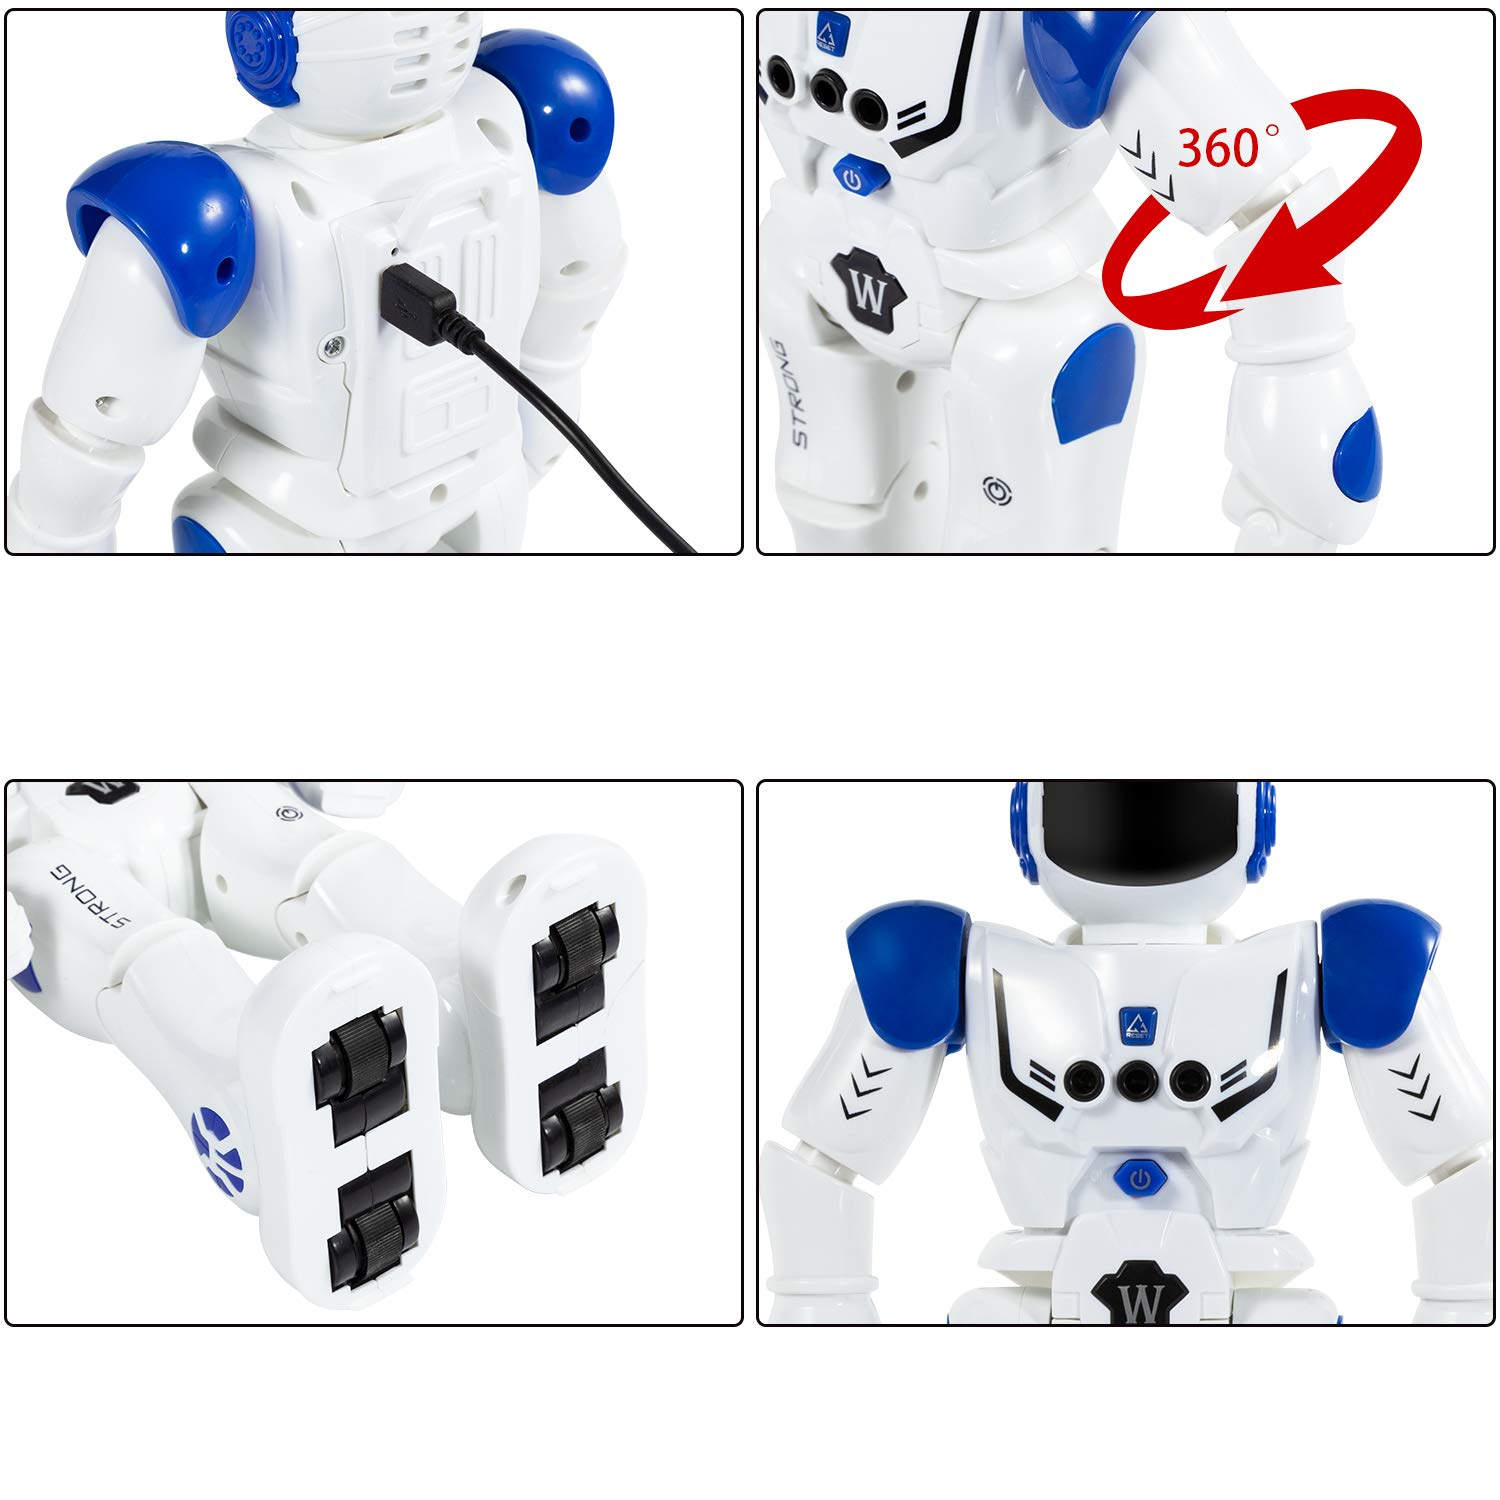 KINFAYV Smart Robot Toy - Remote Control Robot, RC Programmable Educational Robot for Kids Birthday Gift Present, Interactive Walking Singing Dancing Smart Intelligent Robotics for Kids by KINFAYV (Image #7)